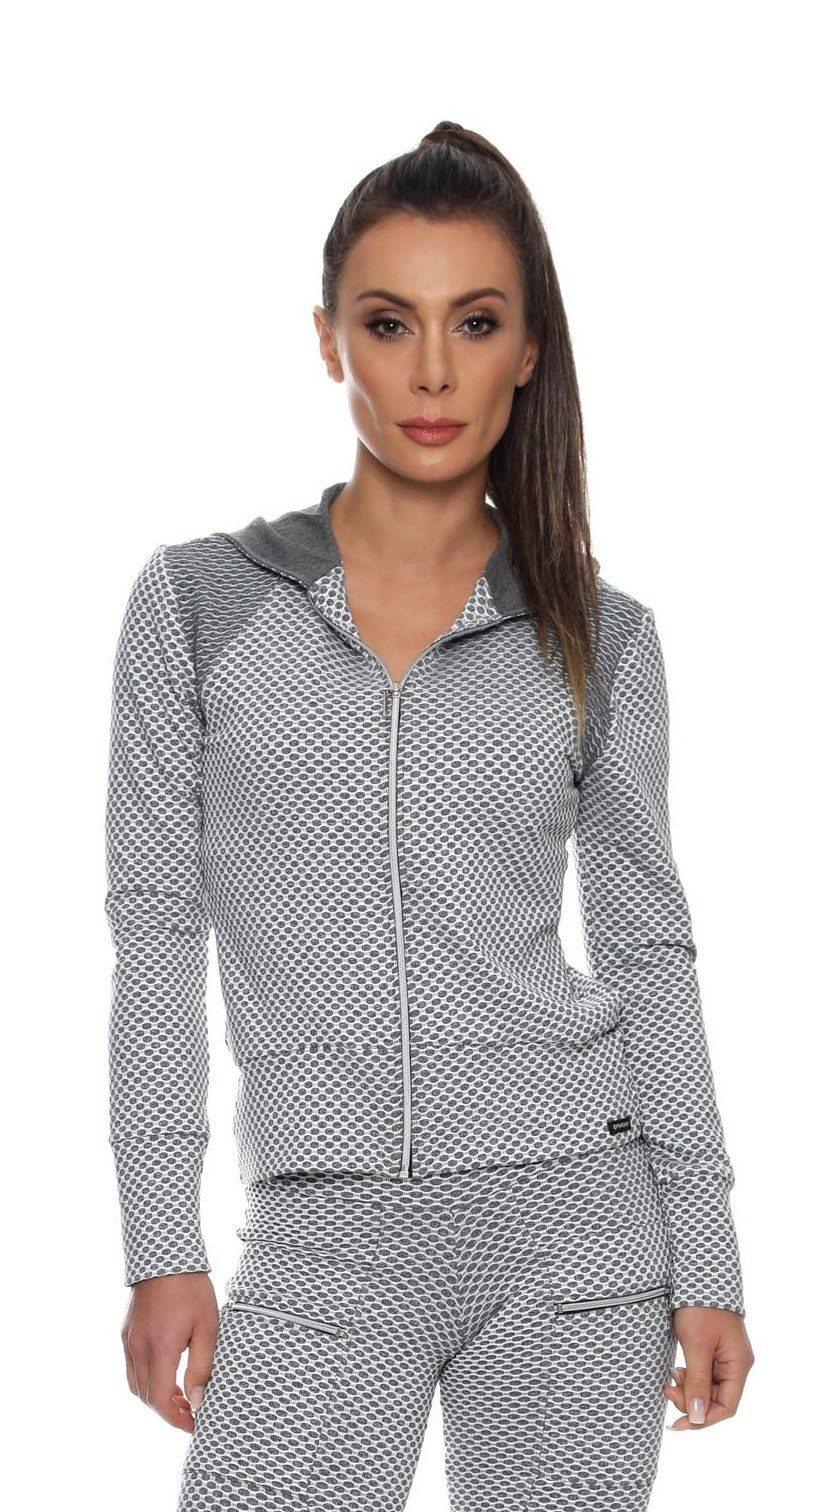 Brazilian Workout Jacket  -Gray Textured Jacket